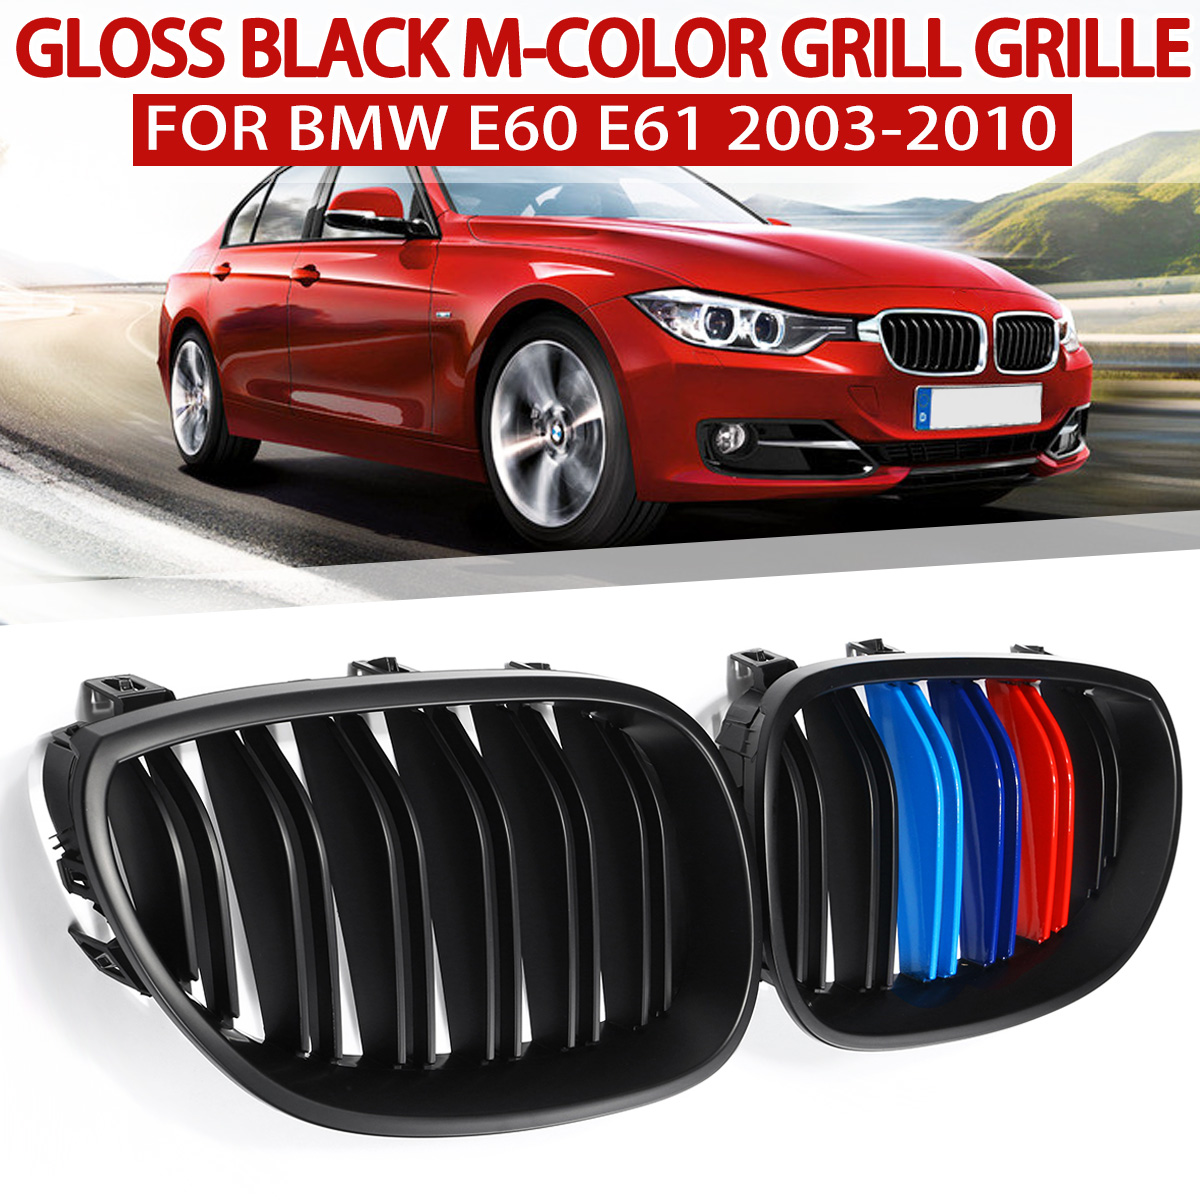 Car Glossy Black M-Color Red Blue Green Color Front Kidney Grilles For <font><b>BMW</b></font> 5 series E60 <font><b>E61</b></font> 2003 2004 2005 2006 2007 2008 2009 image